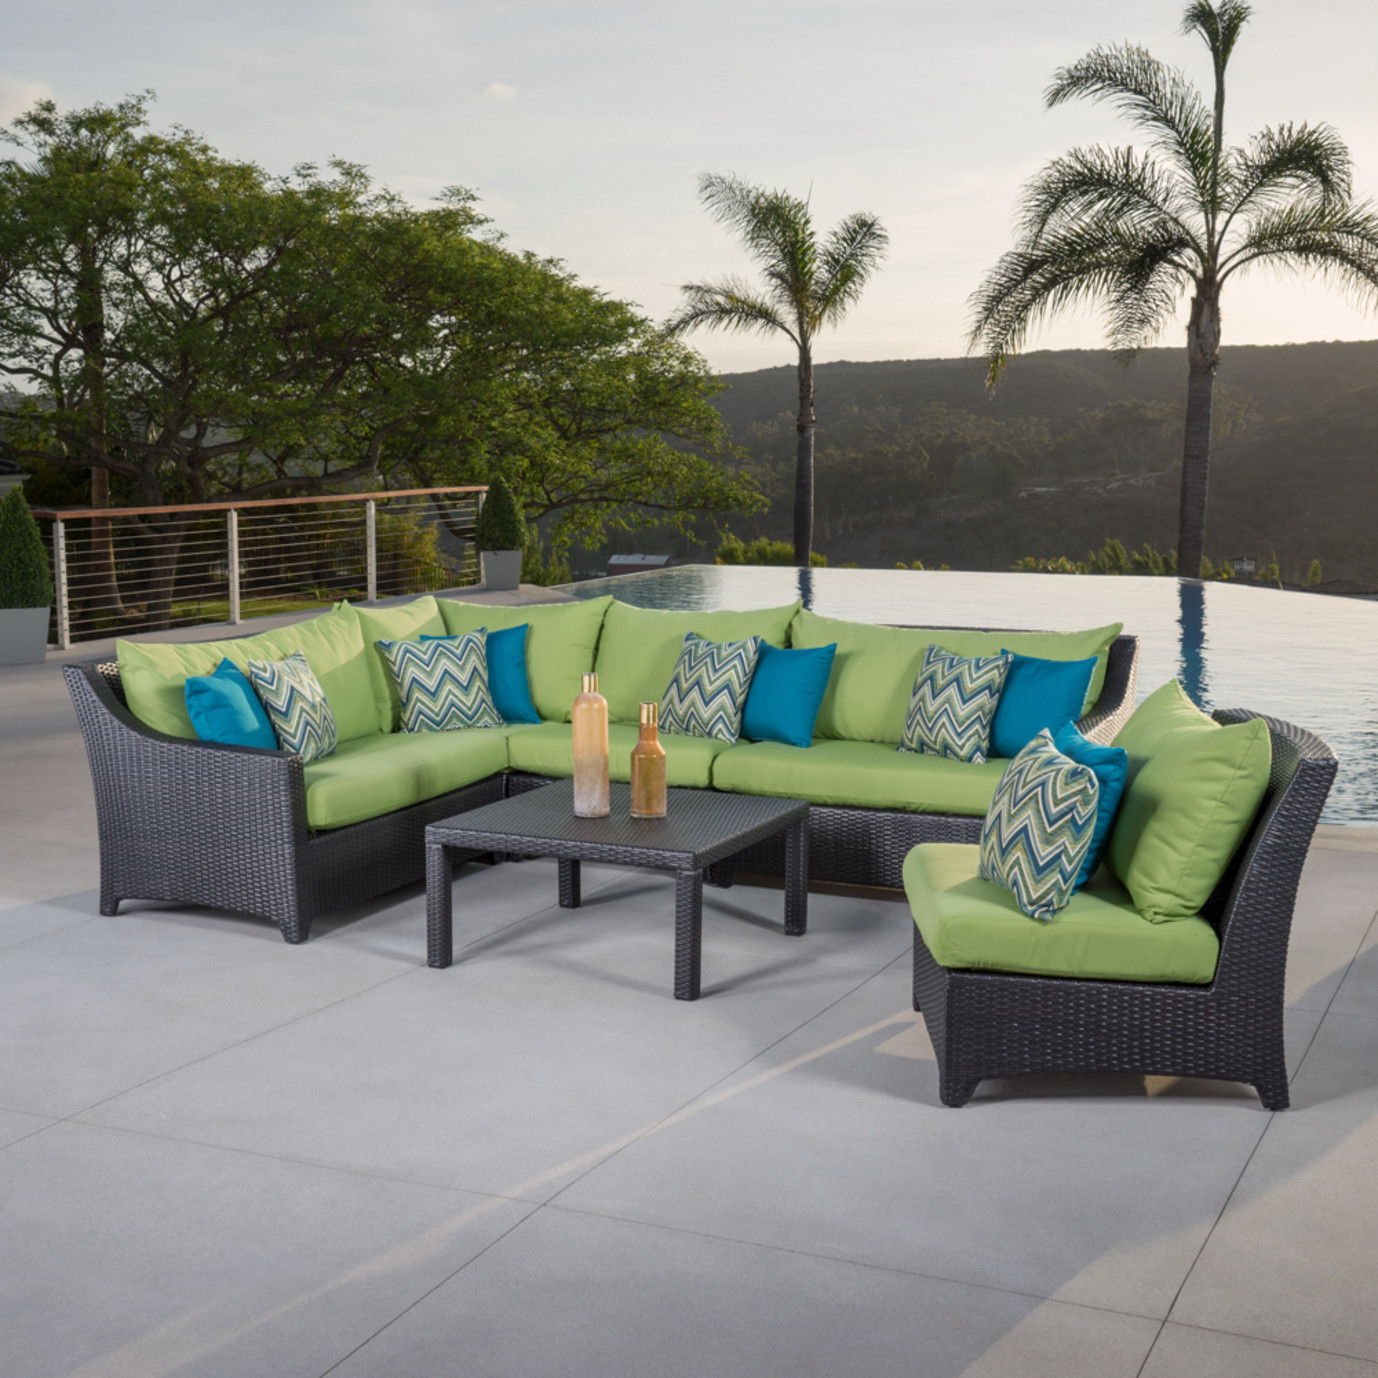 Deco™ 6 Piece Sectional and Table - Ginkgo Green